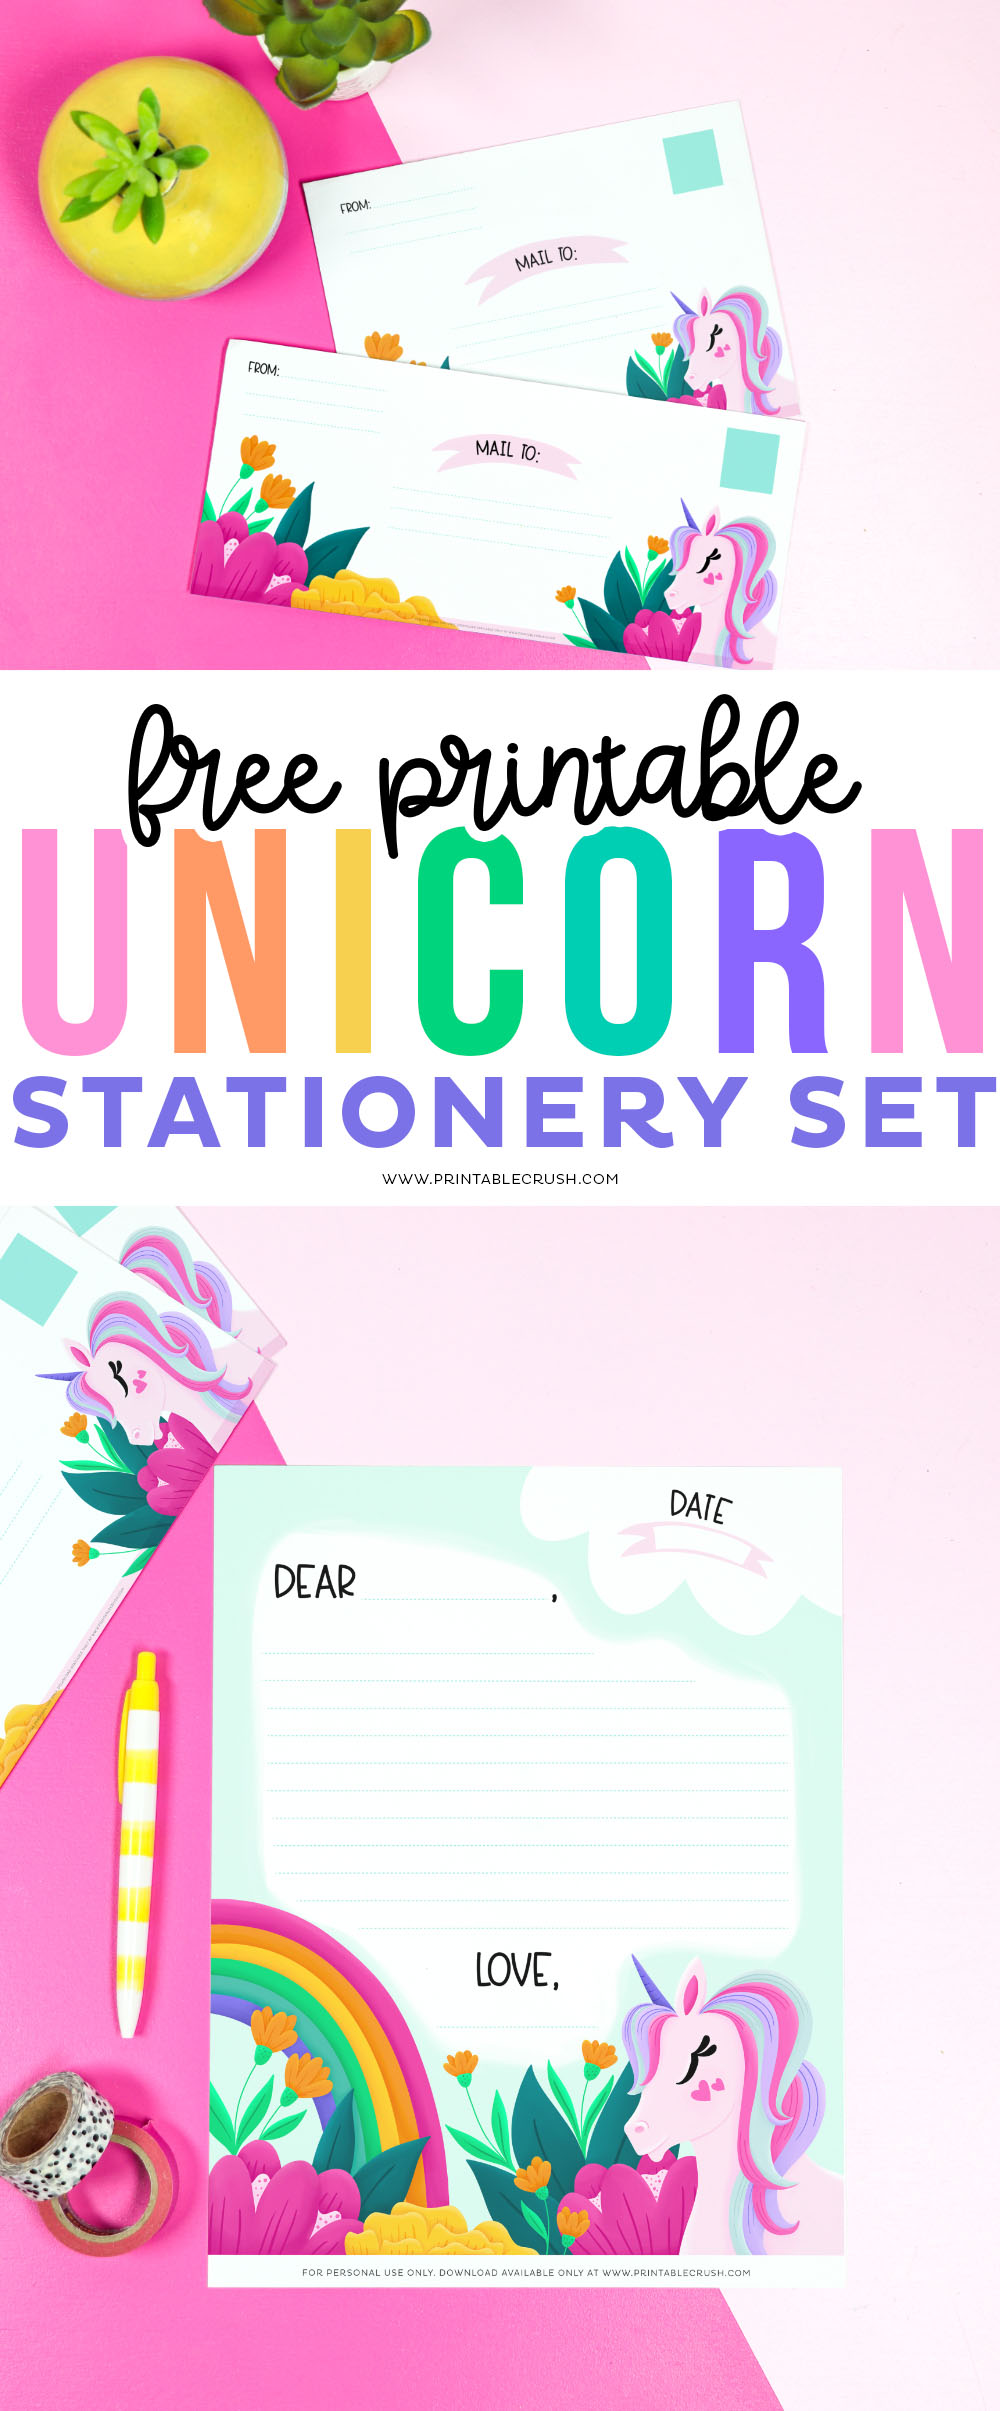 Free Unicorn Stationery Printable Set - Includes letter stationery and envelopes in two sizes - Printable Crush #unicorns #unicornstationery #stationery #unicornprintable #freeprintable #freeprintables #printablecrush via @printablecrush